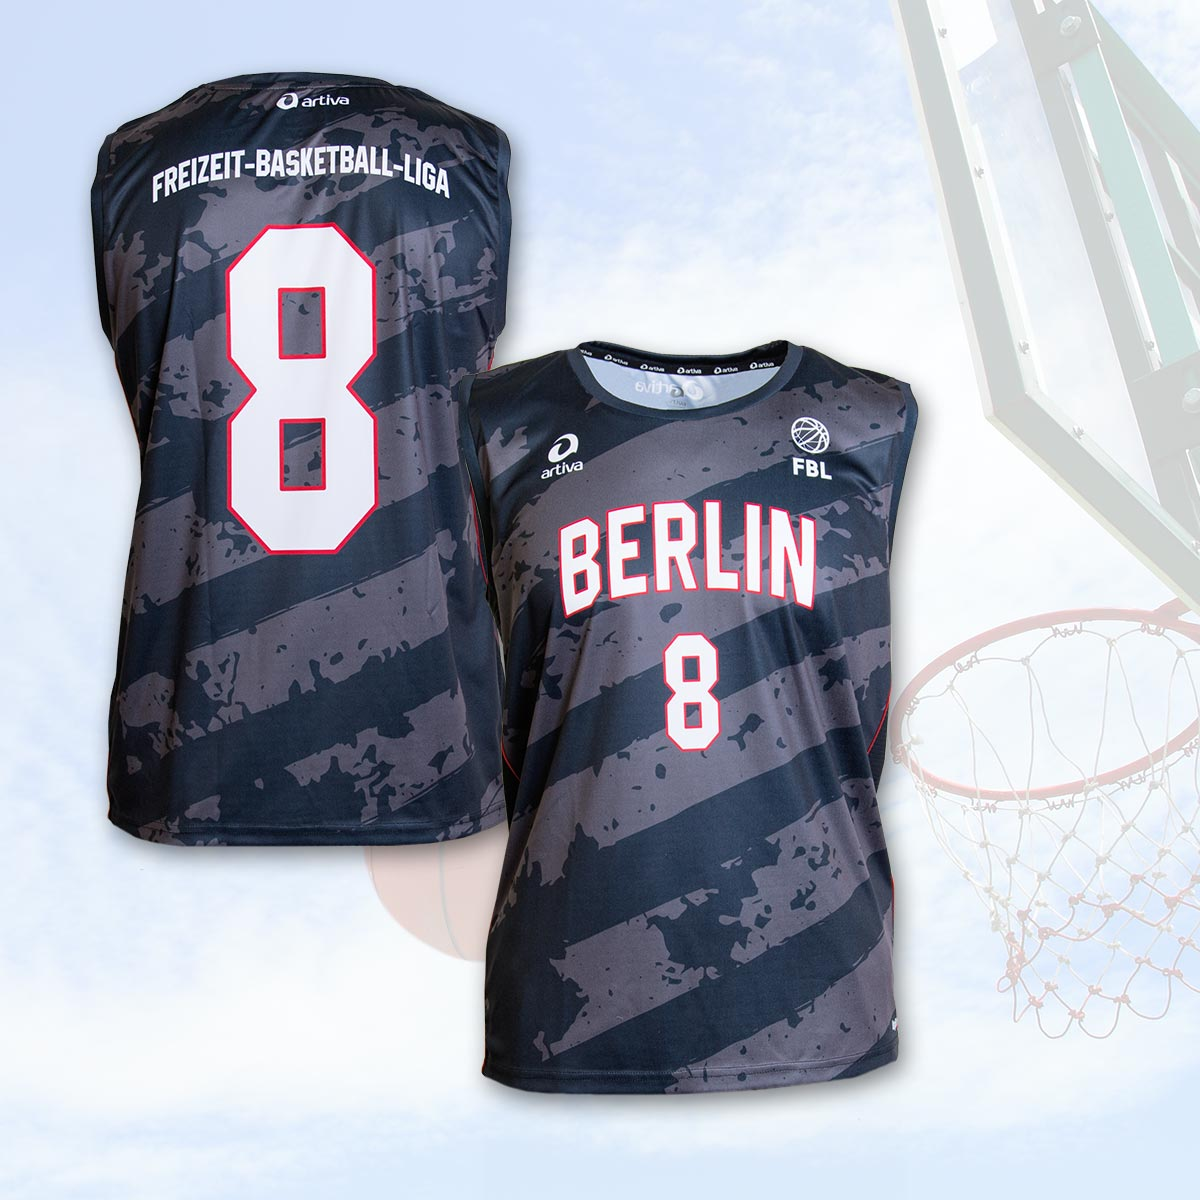 info for 1630c 0af06 Individuelle Basketball-Trikots gestalten | 100% customized ...